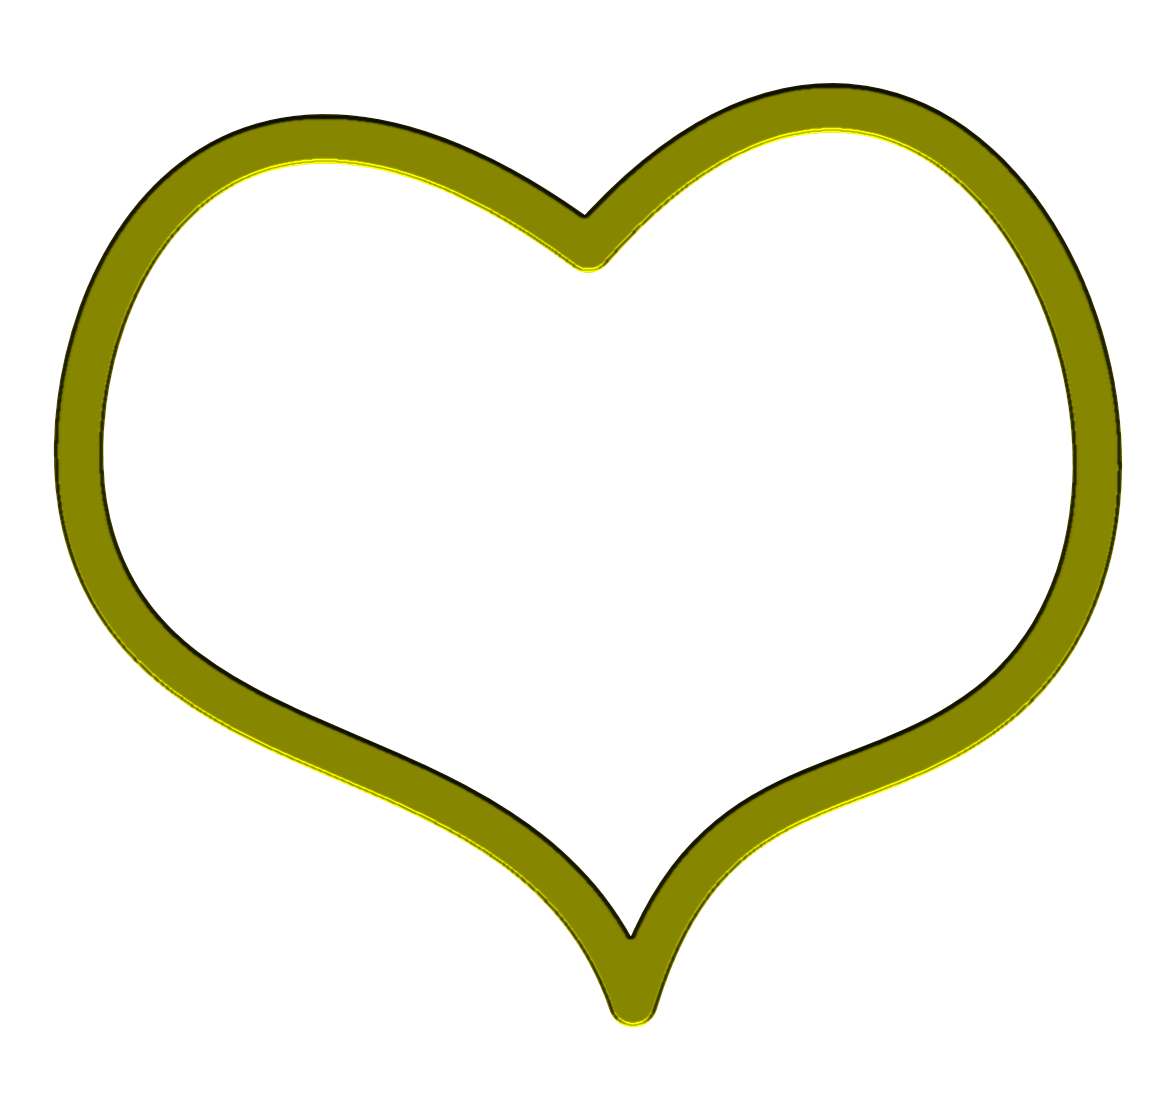 Gold heart clipart free download best glod clipart freeuse download Free Gold Heart Clipart, Download Free Clip Art, Free Clip Art on ... clipart freeuse download